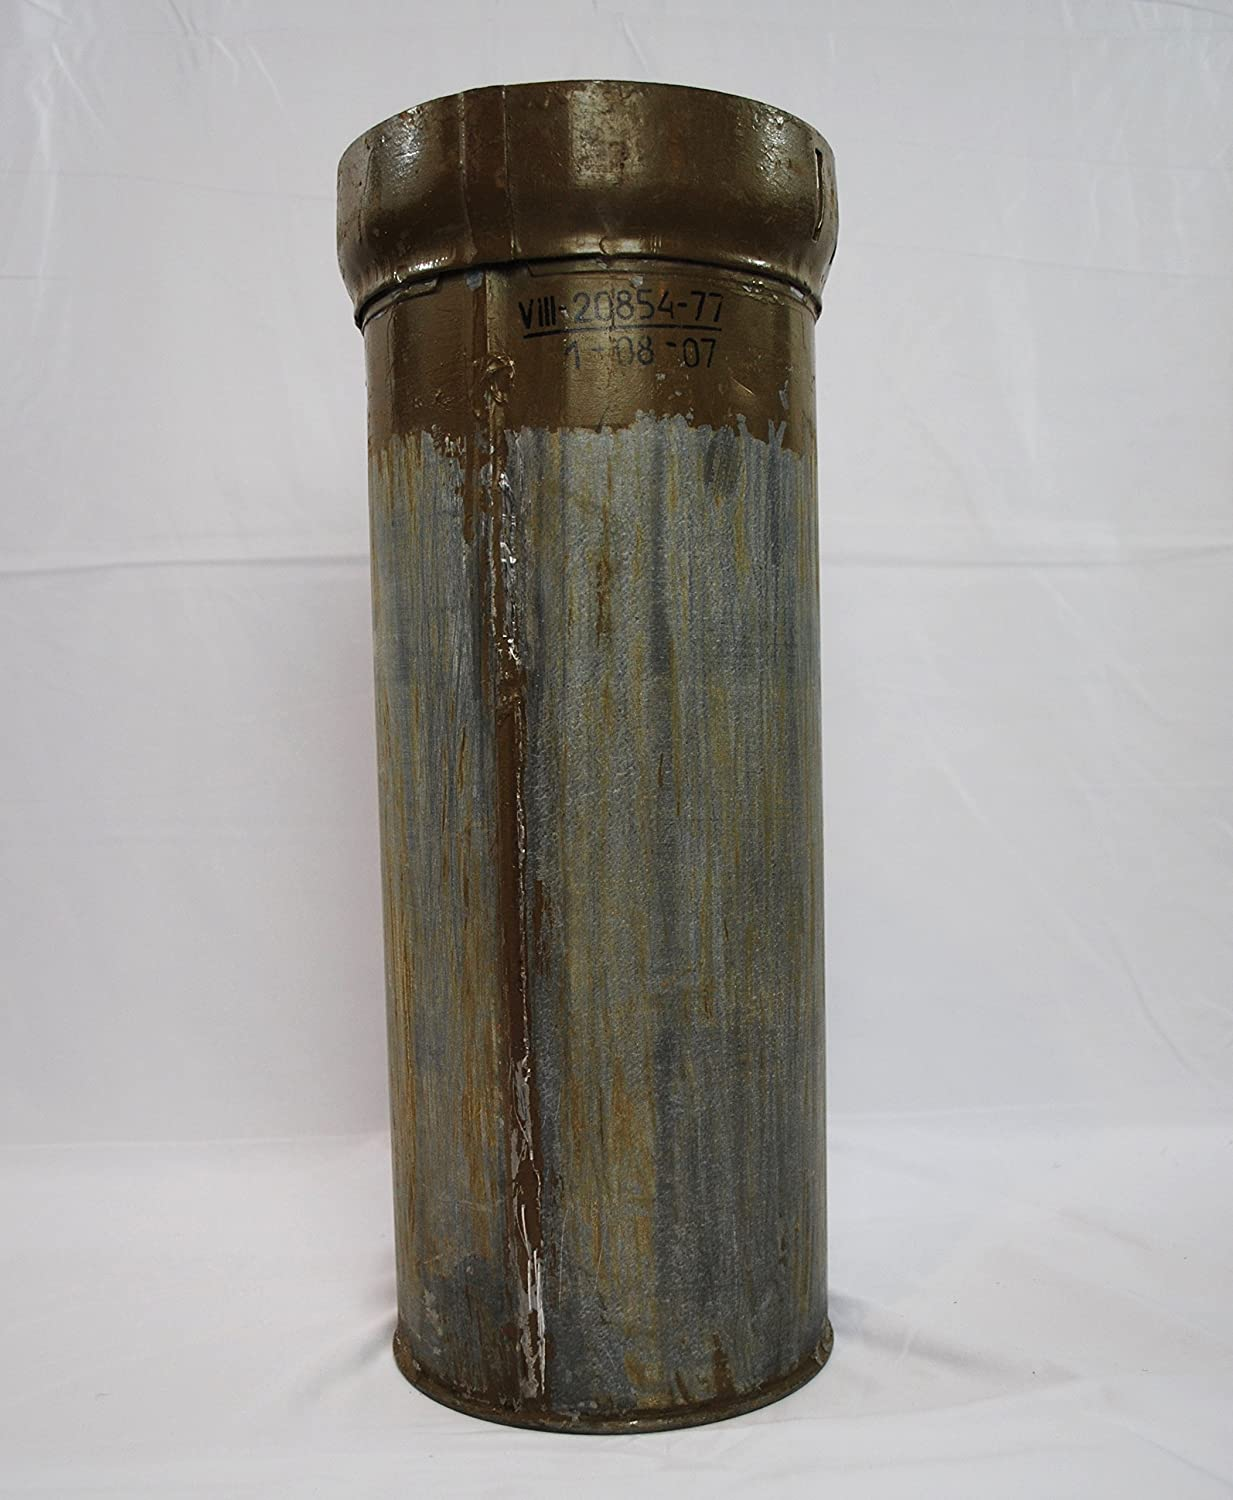 Reclaimed 125 mm Ammunition Canister Used by the US Army for Rustic Home Decor and Stem Displays